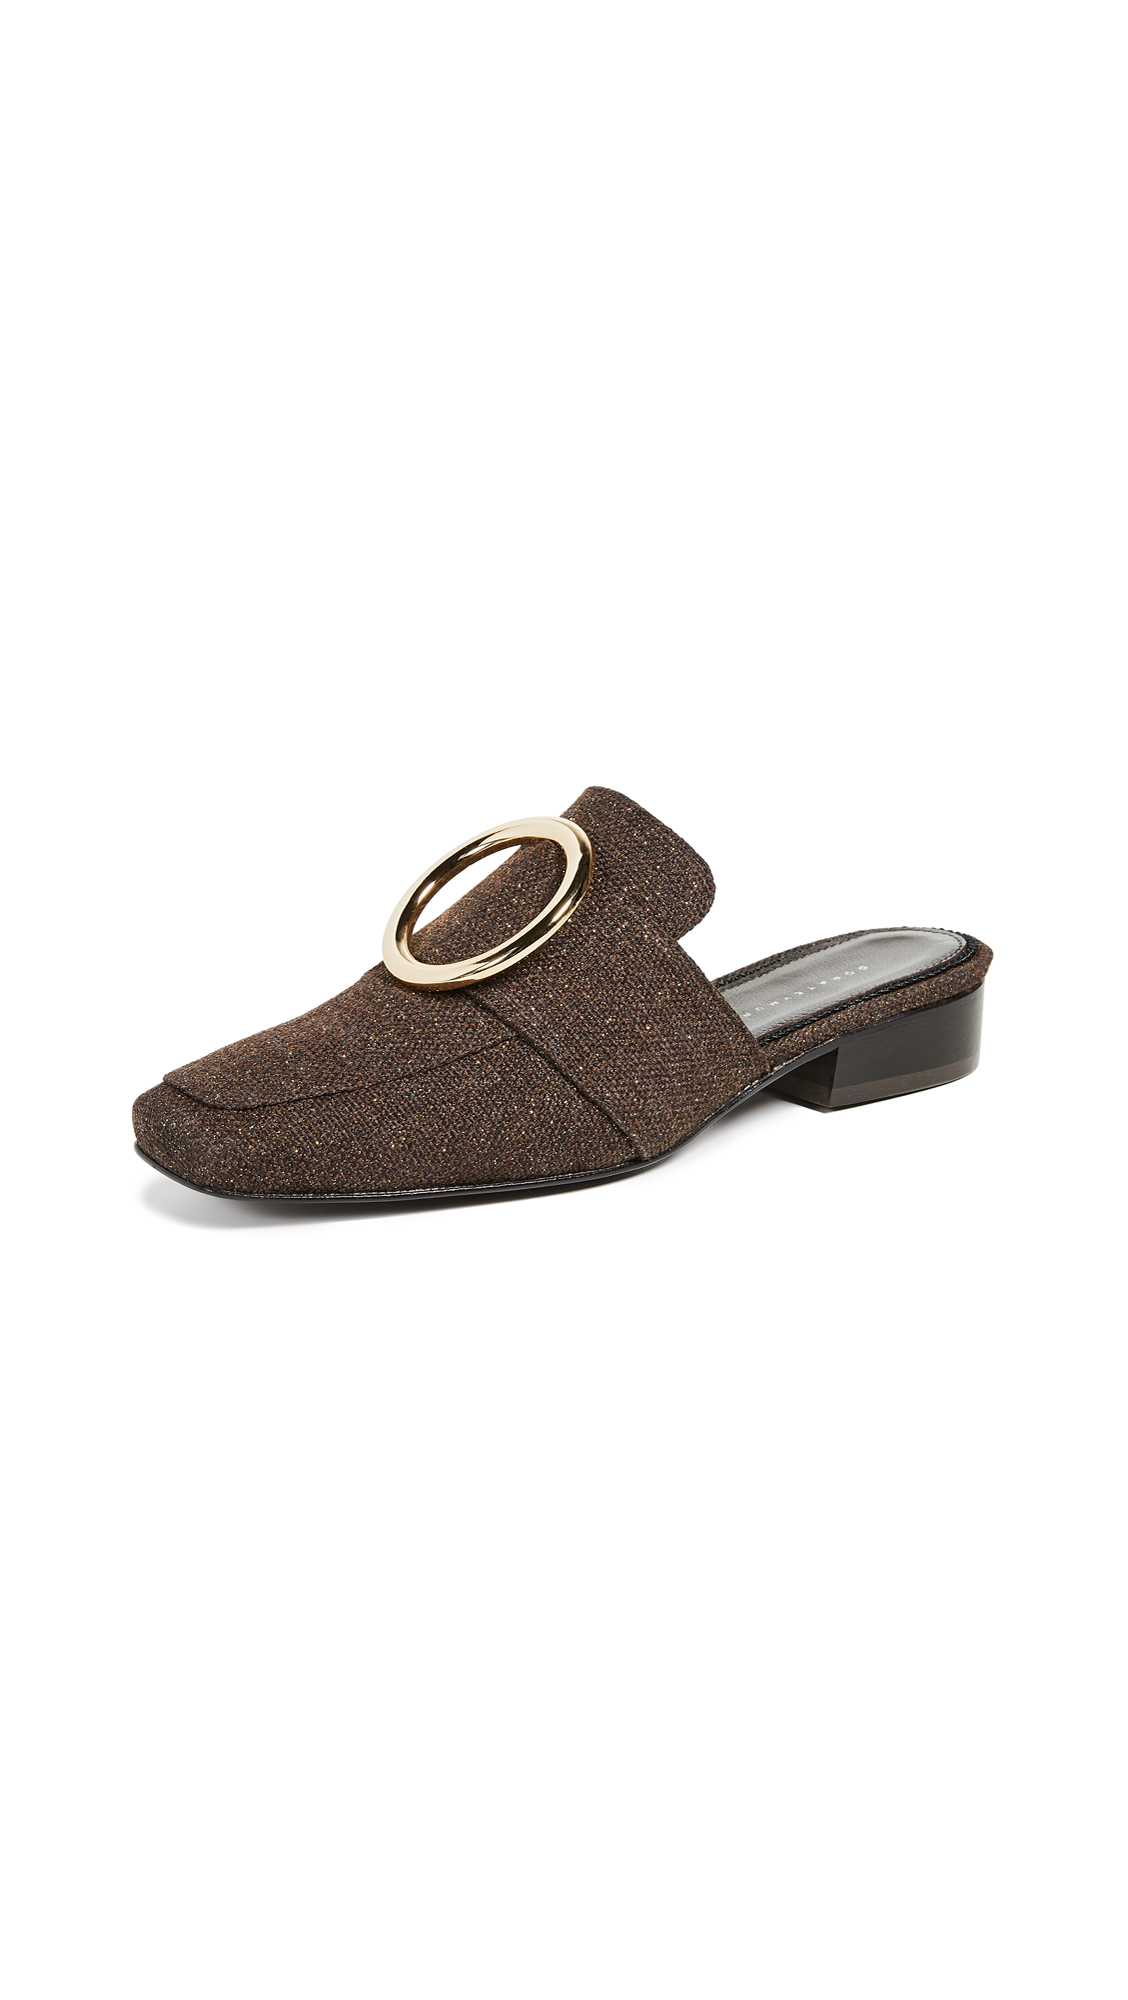 Dorateymur Petrol Mules - Brown